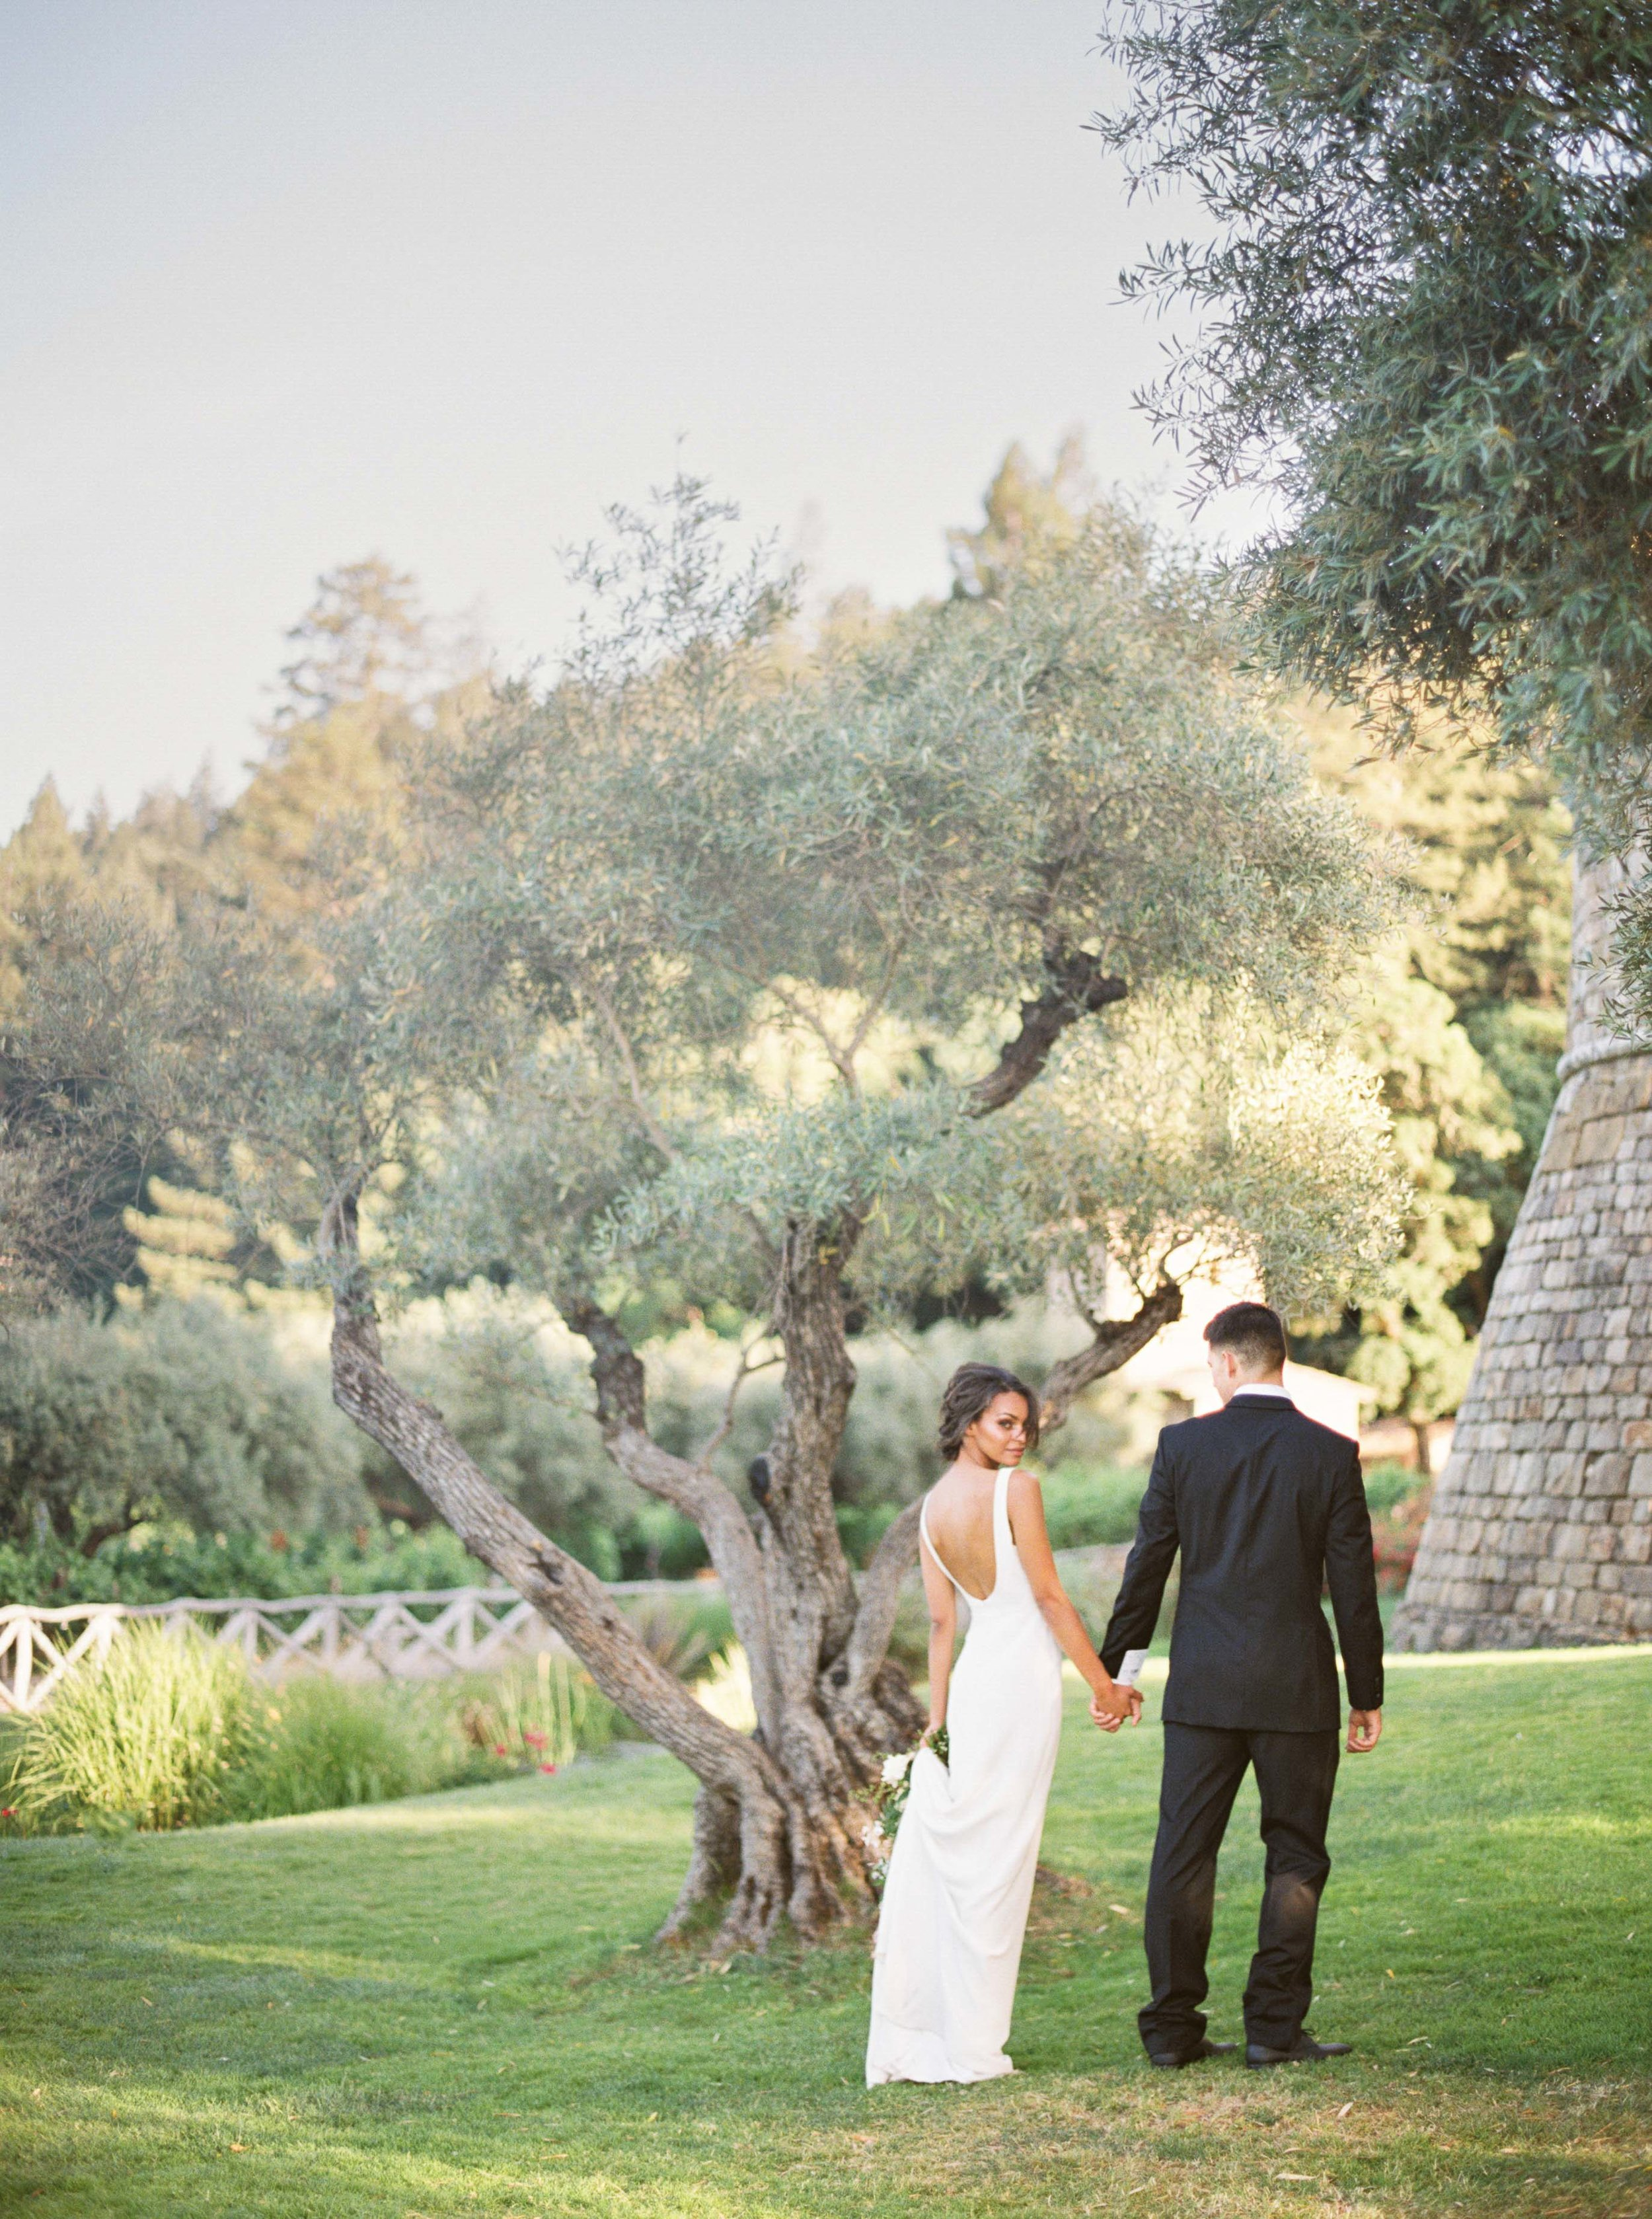 057napa_wedding_photographer_and_videographer_destination_and_elopement_photography.jpg